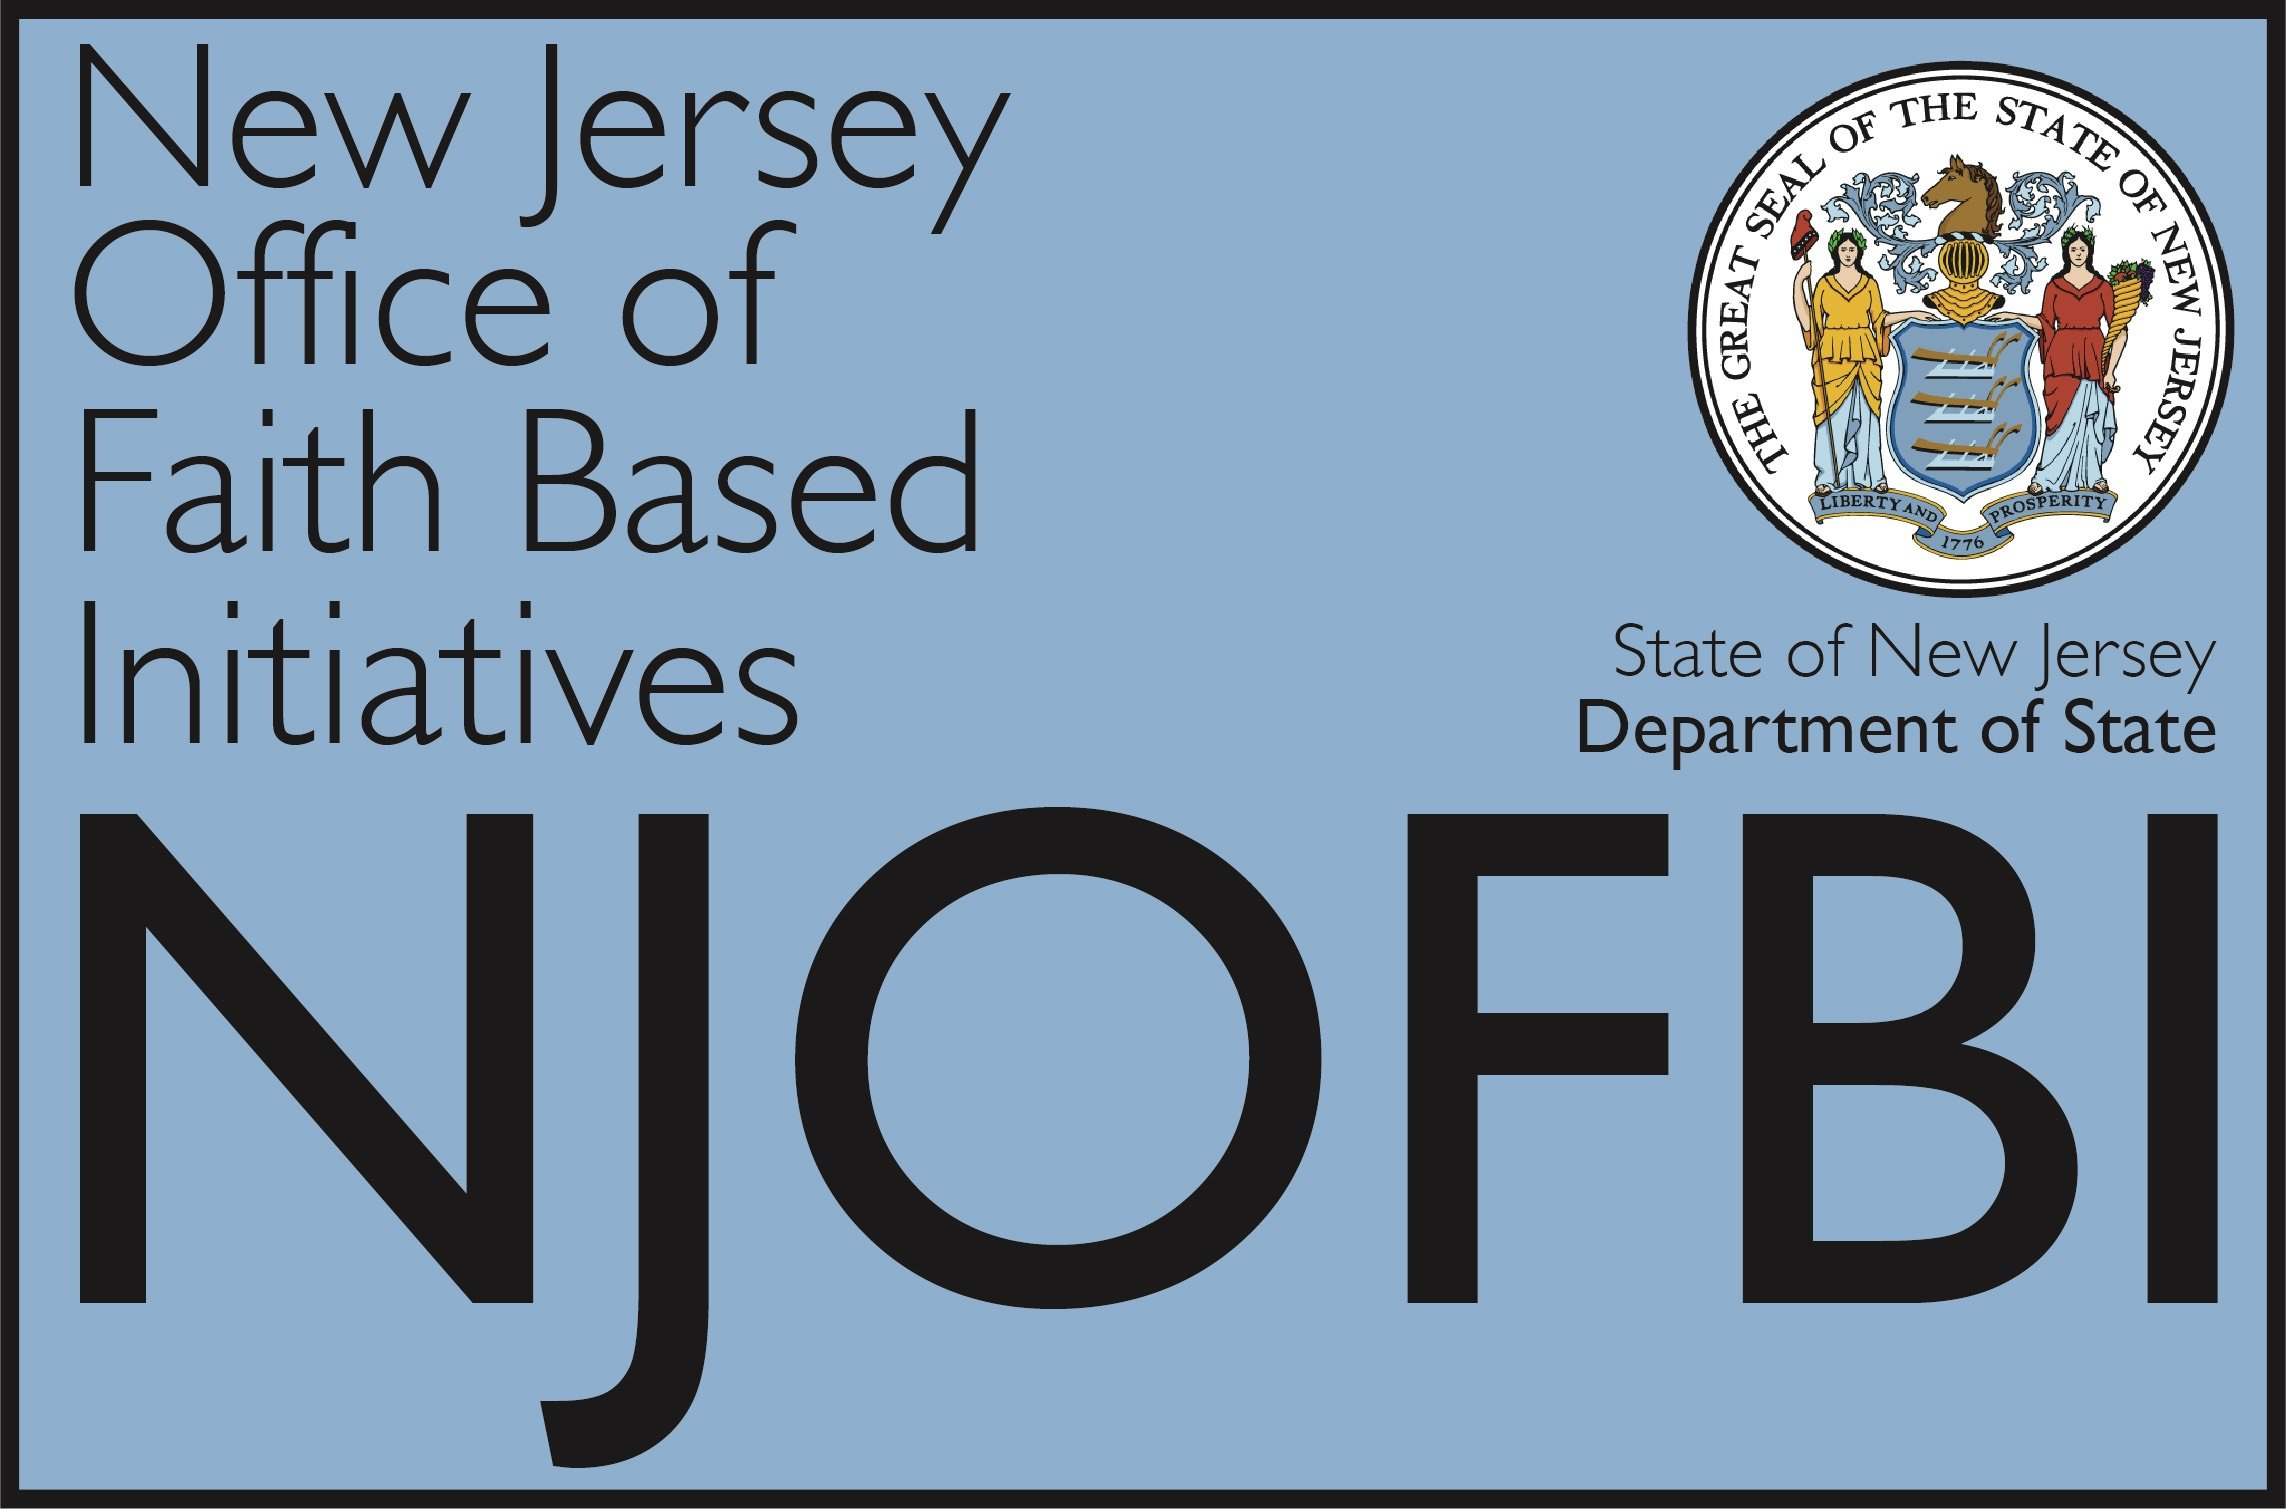 New Jersey Office of Faith Based Initiatives